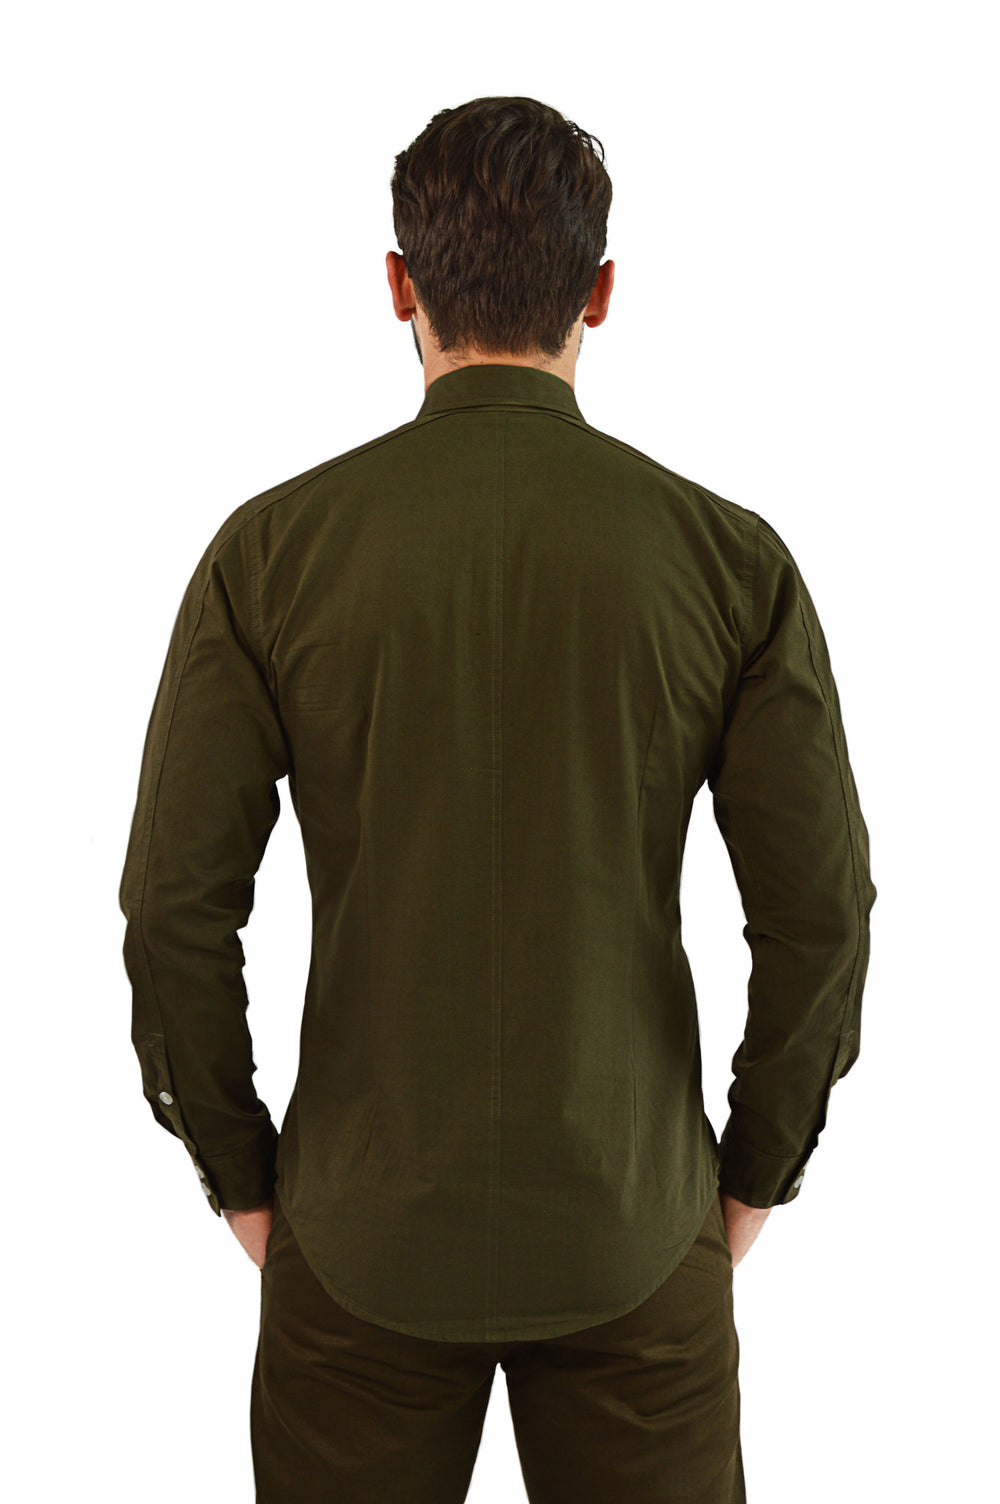 Back view military tailored shirt